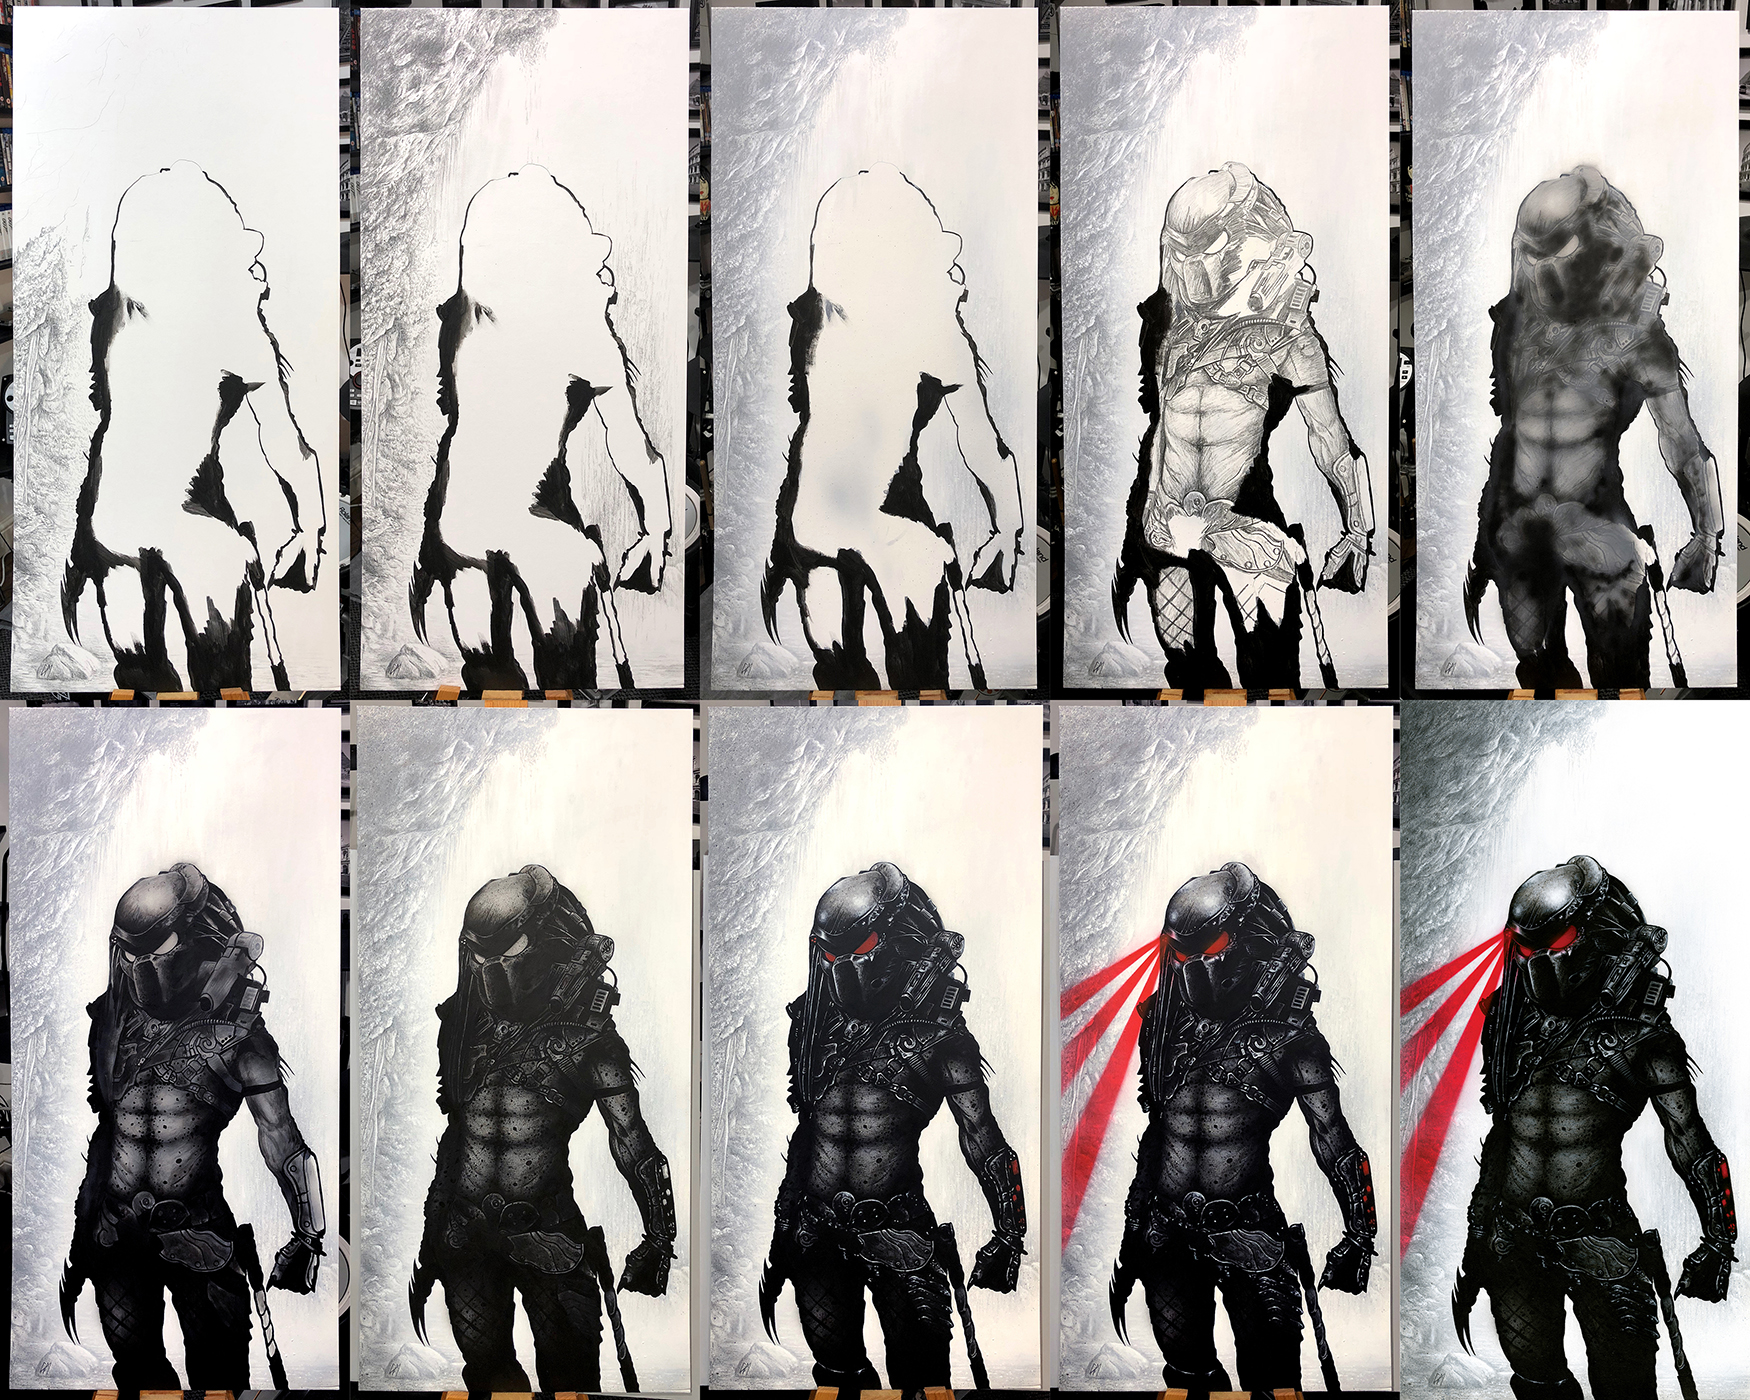 Progress sequence of 'If It Bleeds, We Can Kill It'. Medium: Acrylic paints on art board. Painted portrait done for 'For The Love Of Sci-Fi' and the cast of Predator.